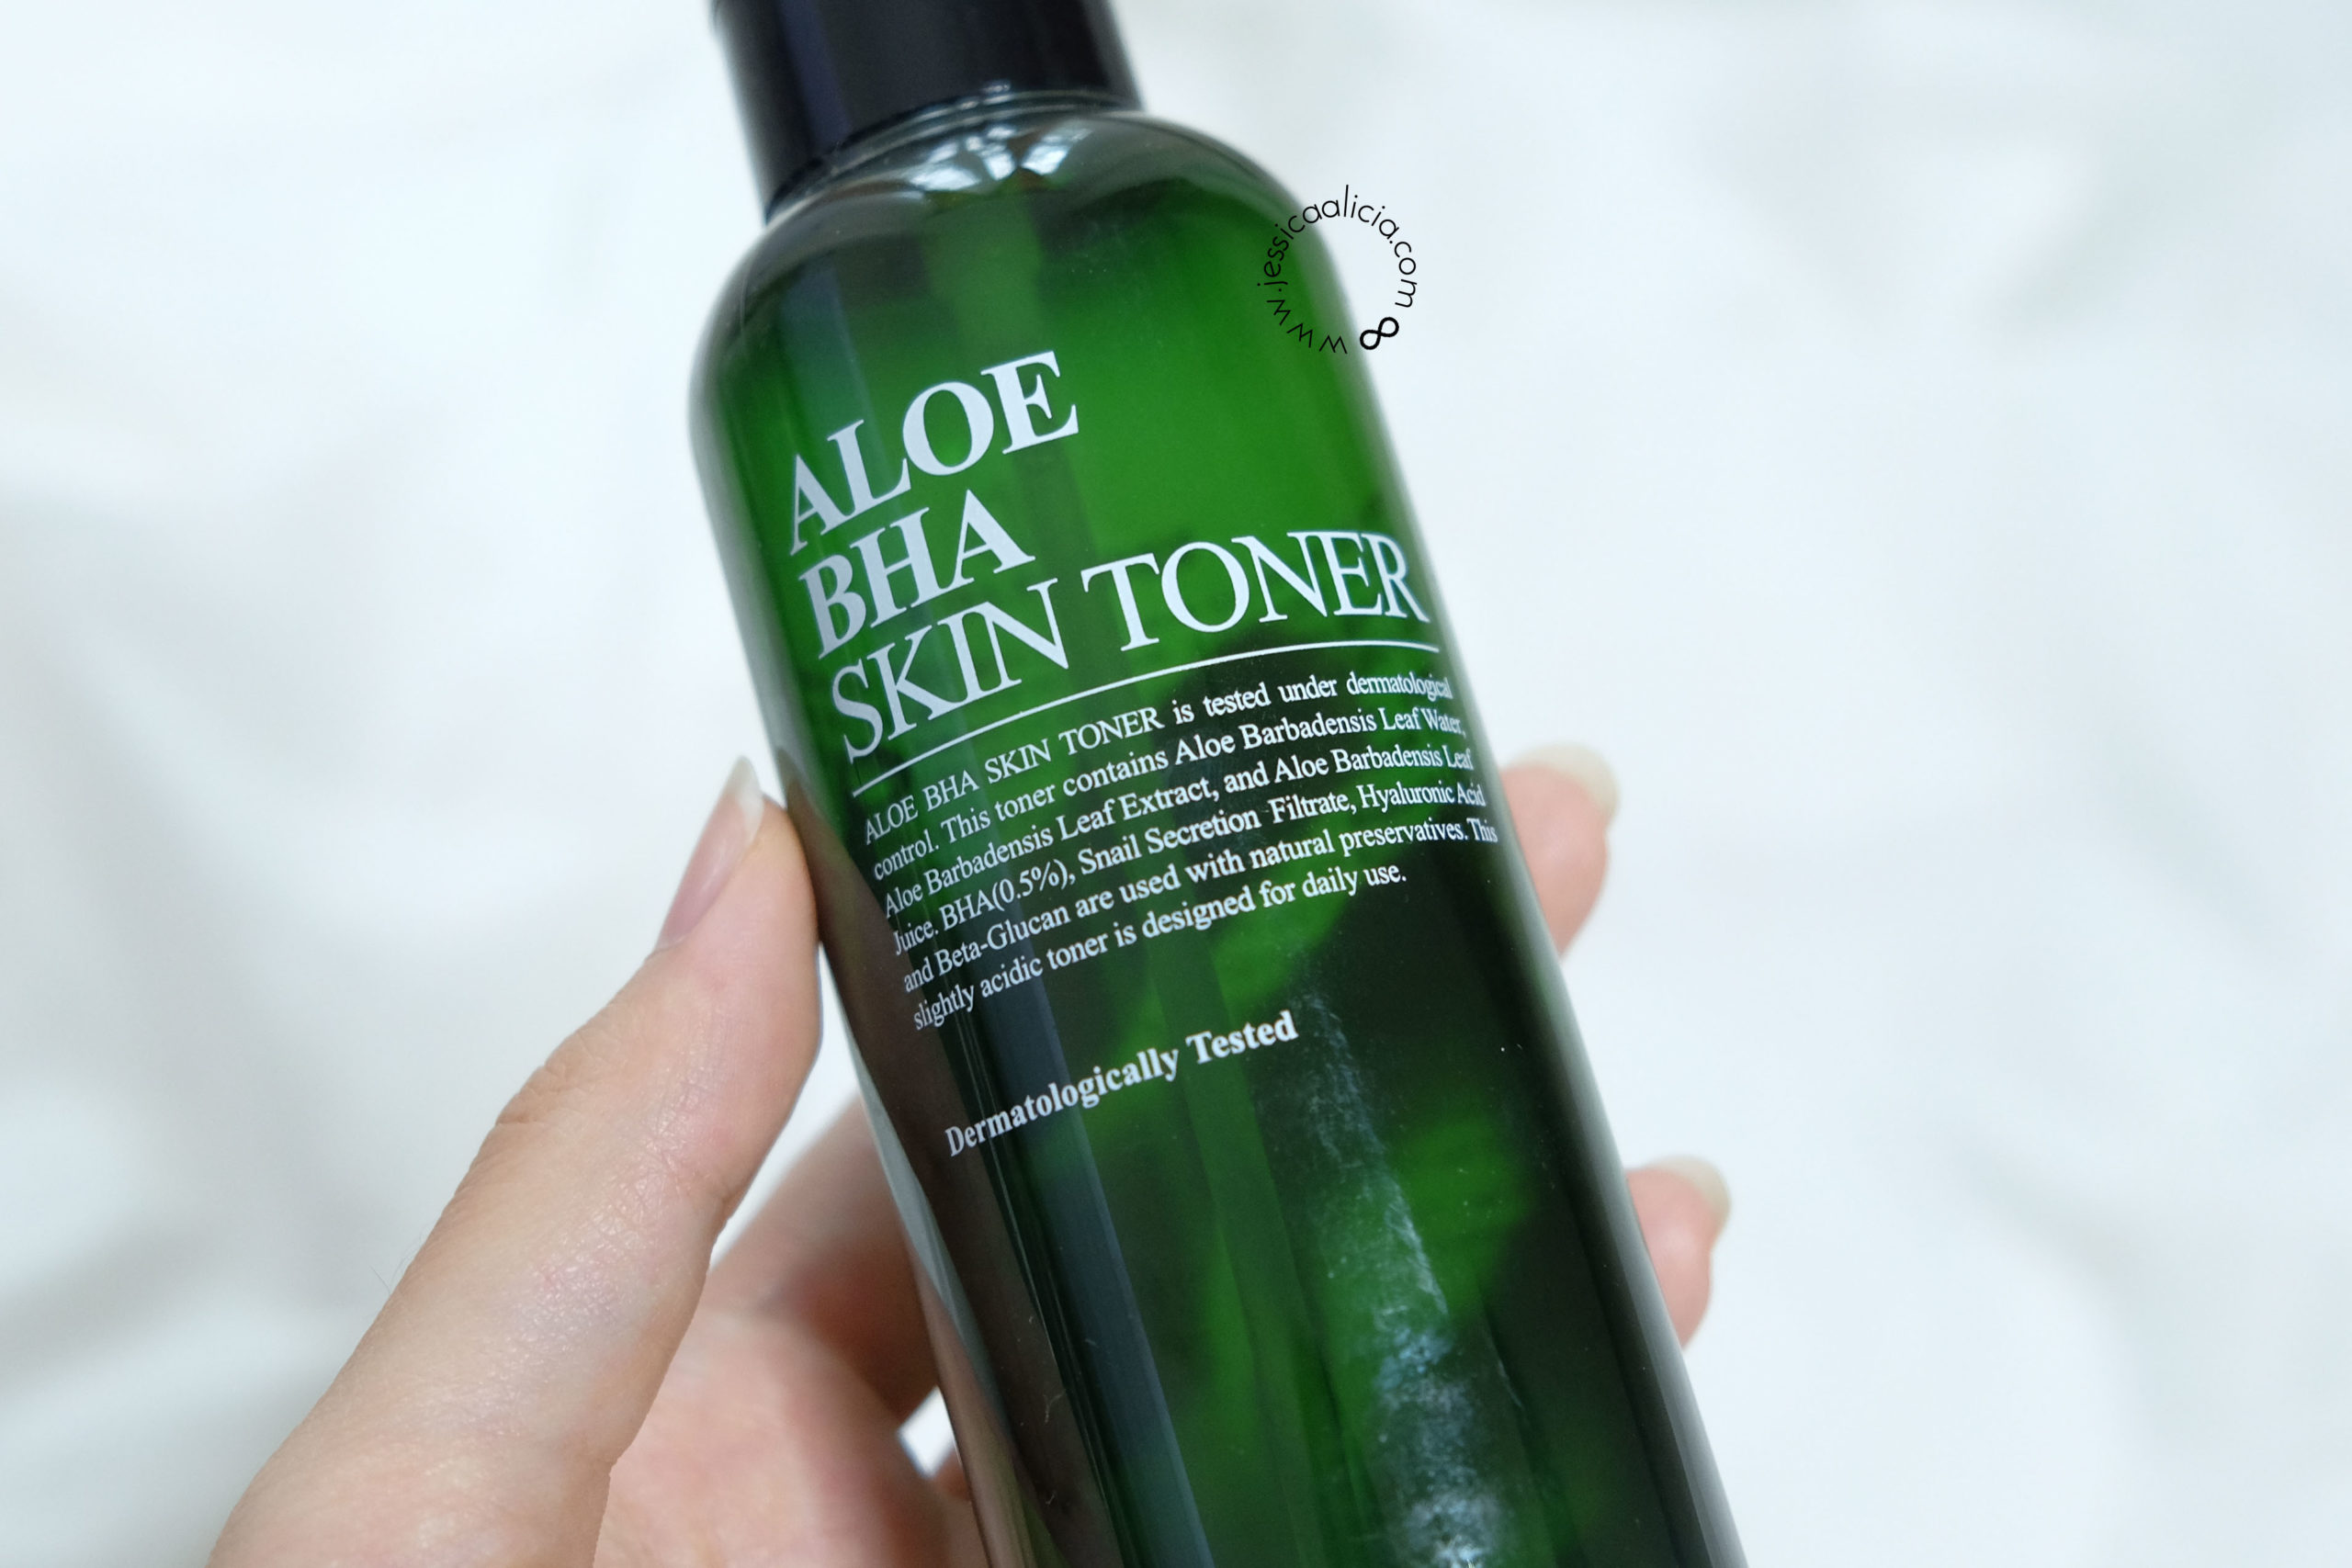 Review : Benton Aloe BHA Skin Toner